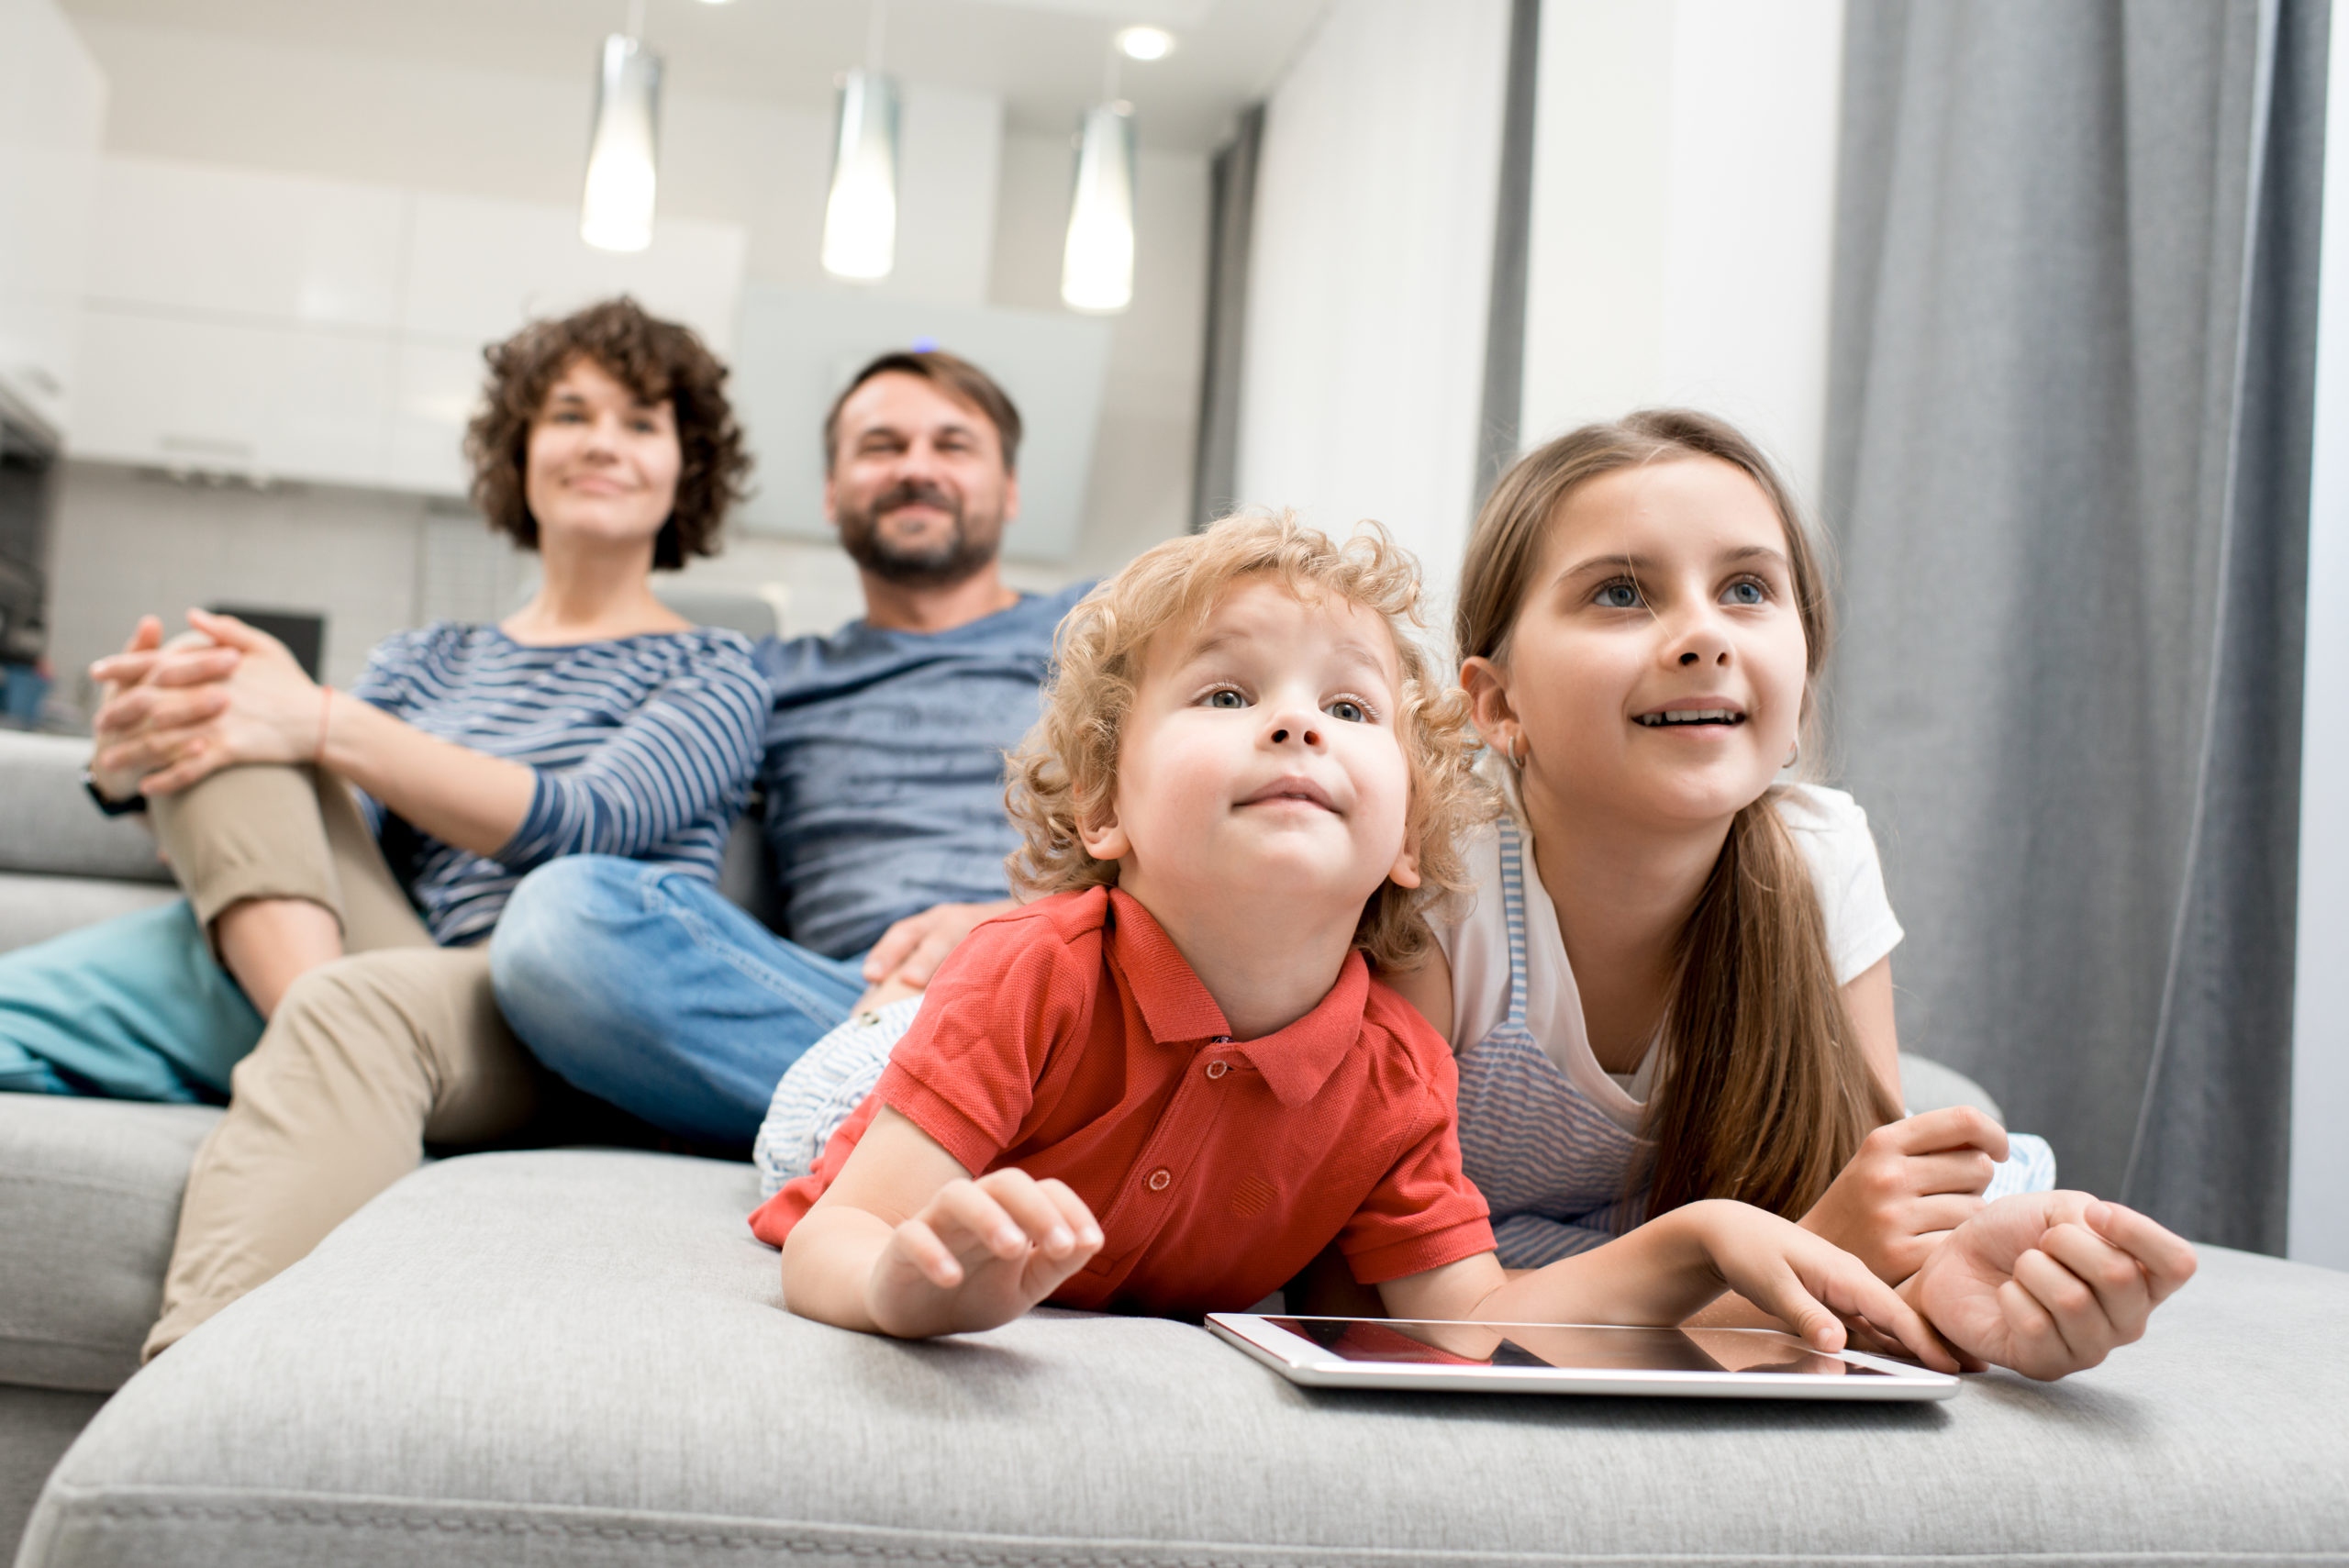 https://elements.envato.com/happy-family-in-living-room-MT8HL6F